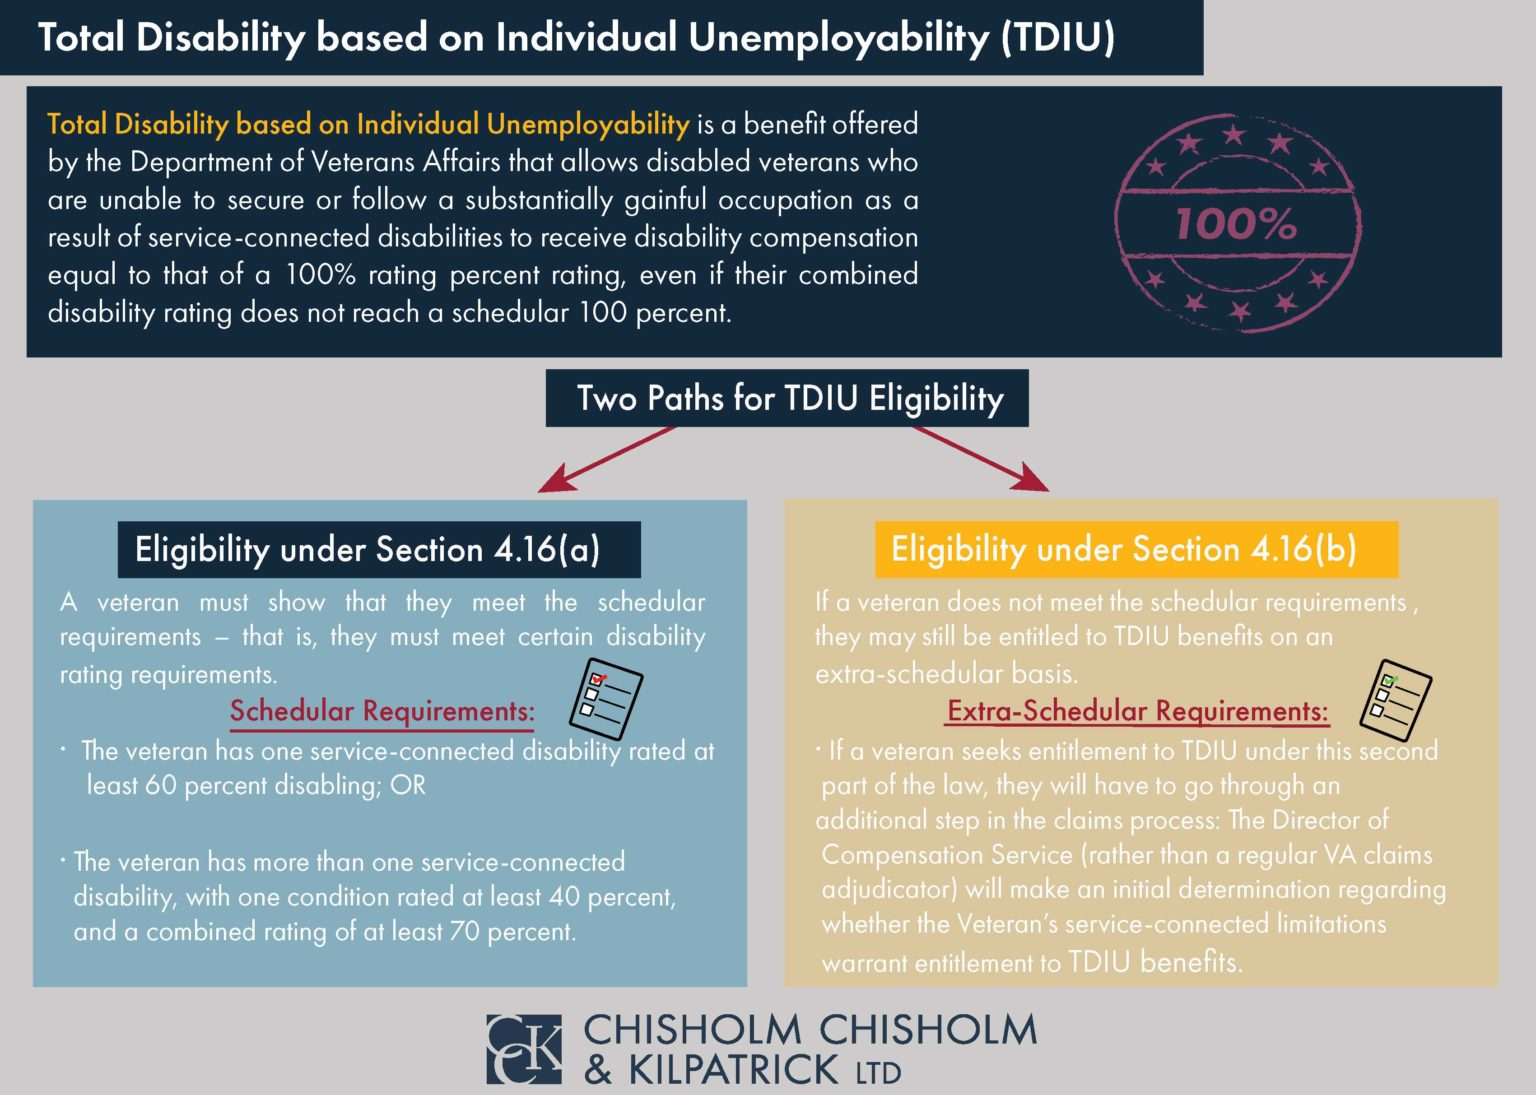 Total Disability based on Individual Unemployability TDIU Infographic